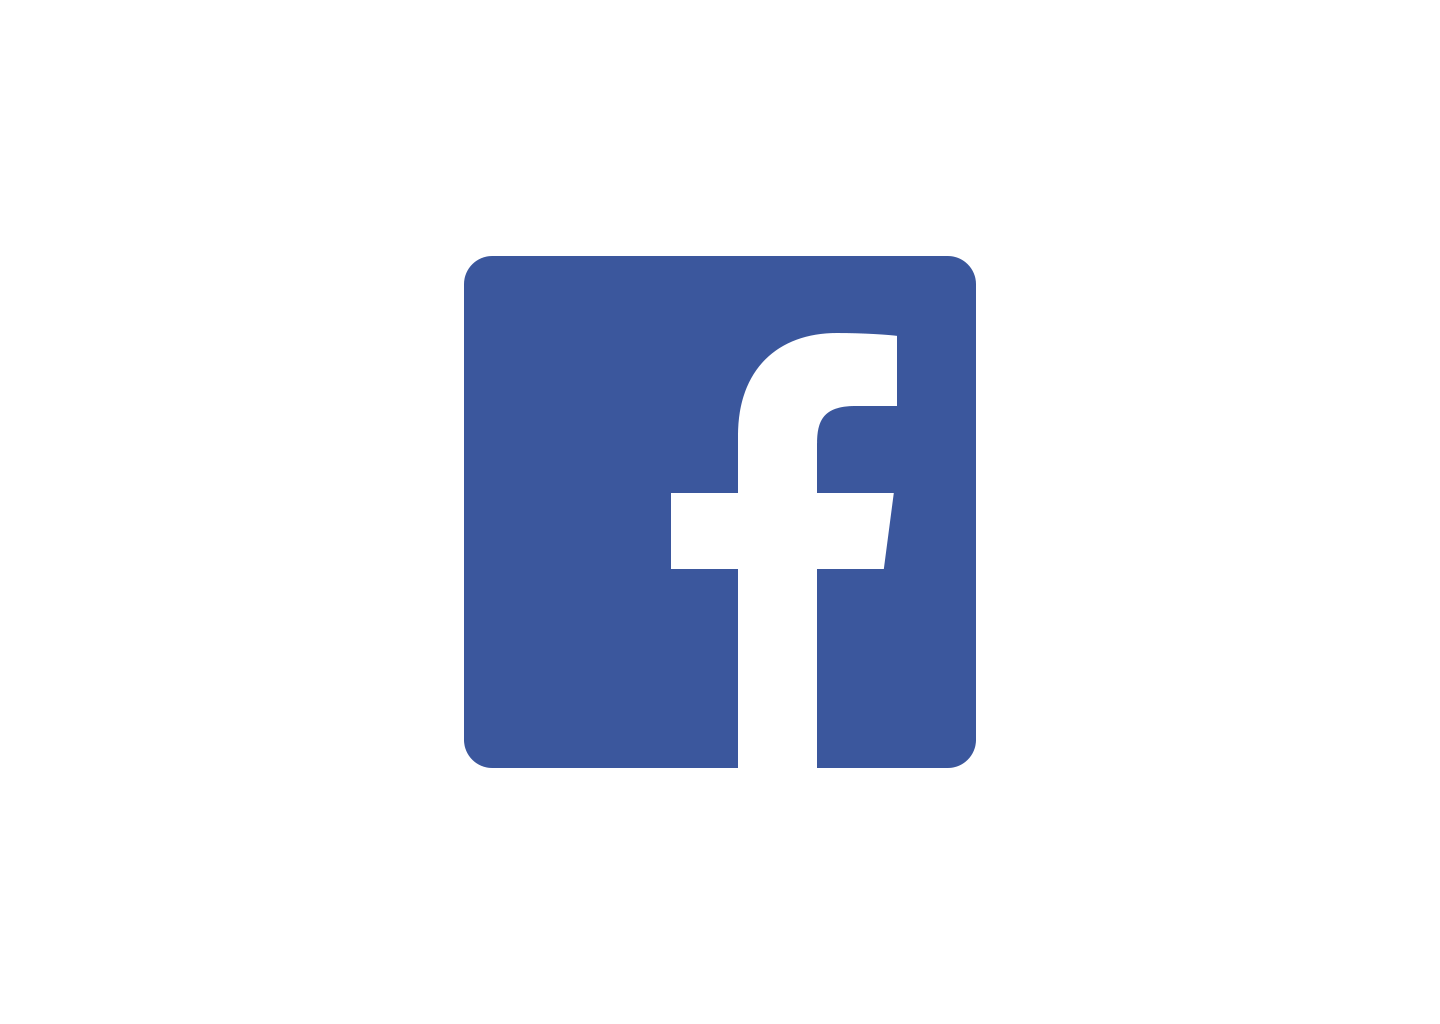 Facebook clipart business card. Famous logo for cards